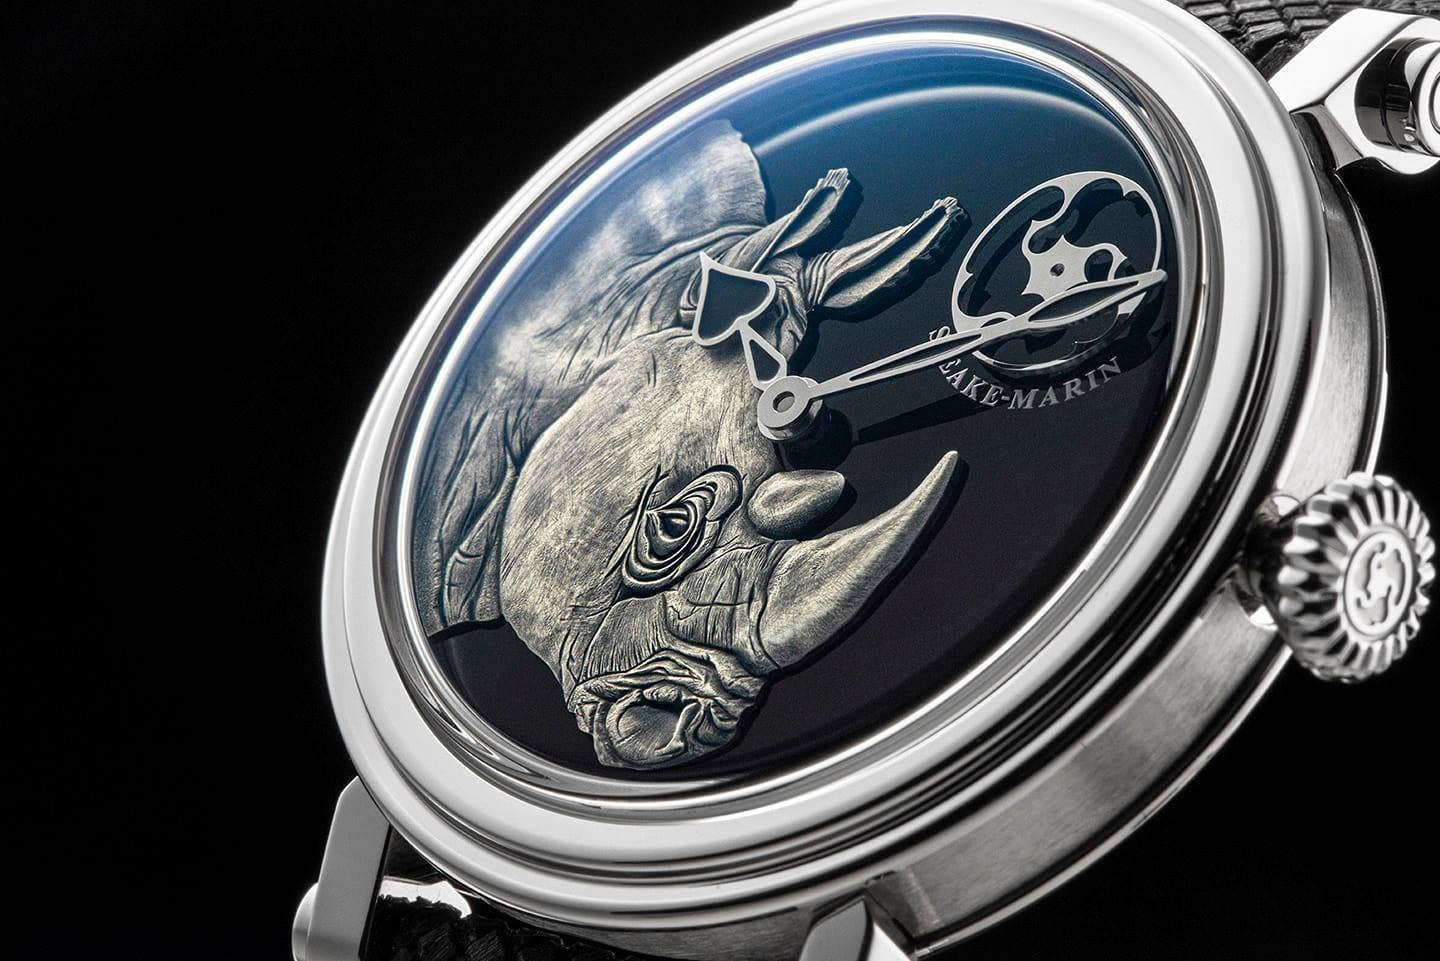 Speake Marin Watches